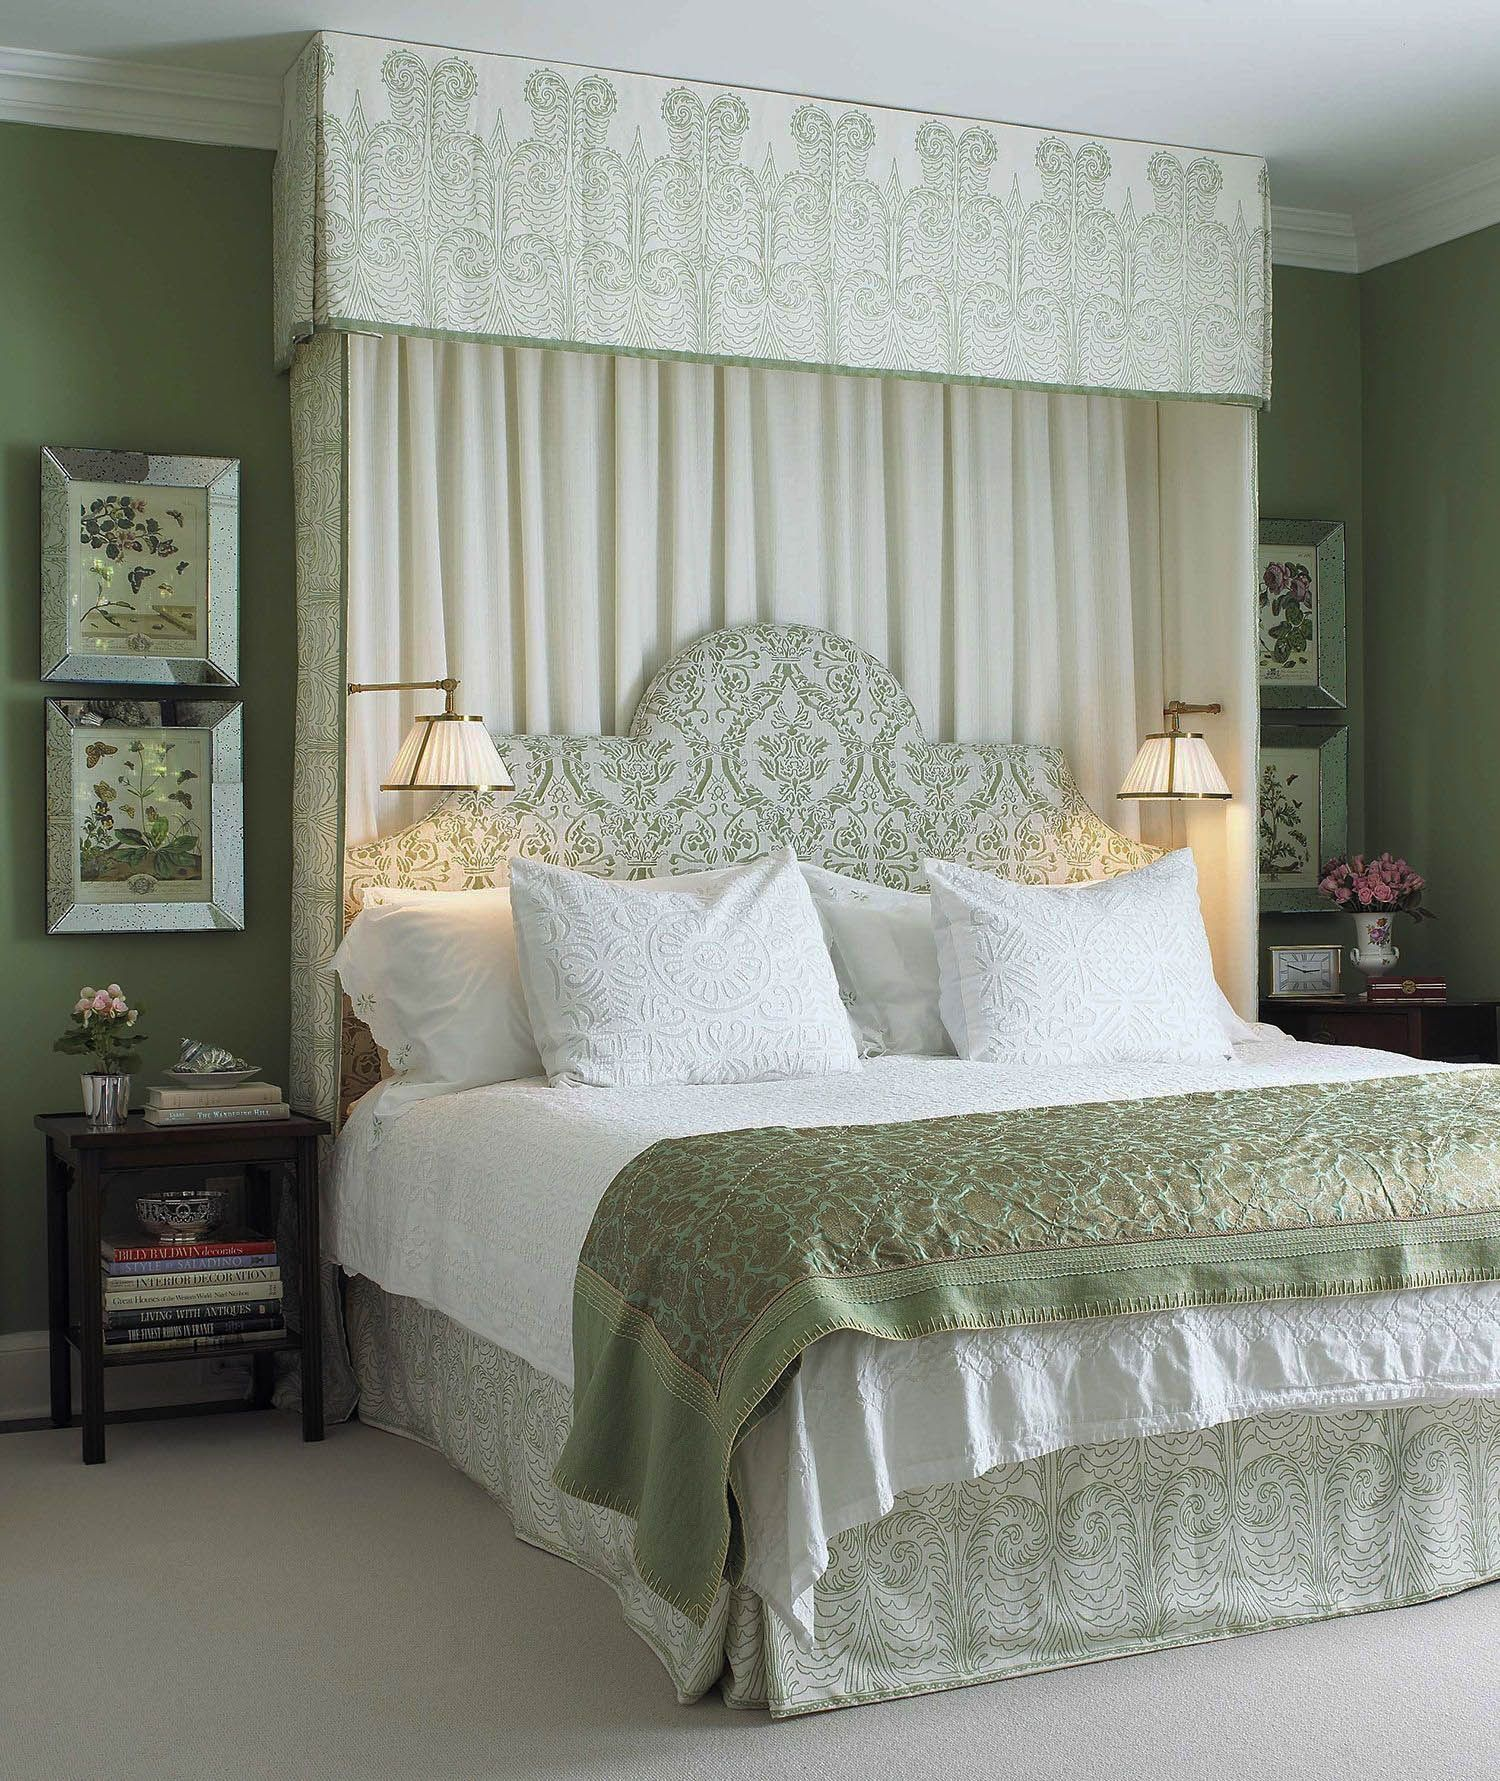 39 of the most ideal Cover Bed Suggestions Canopy